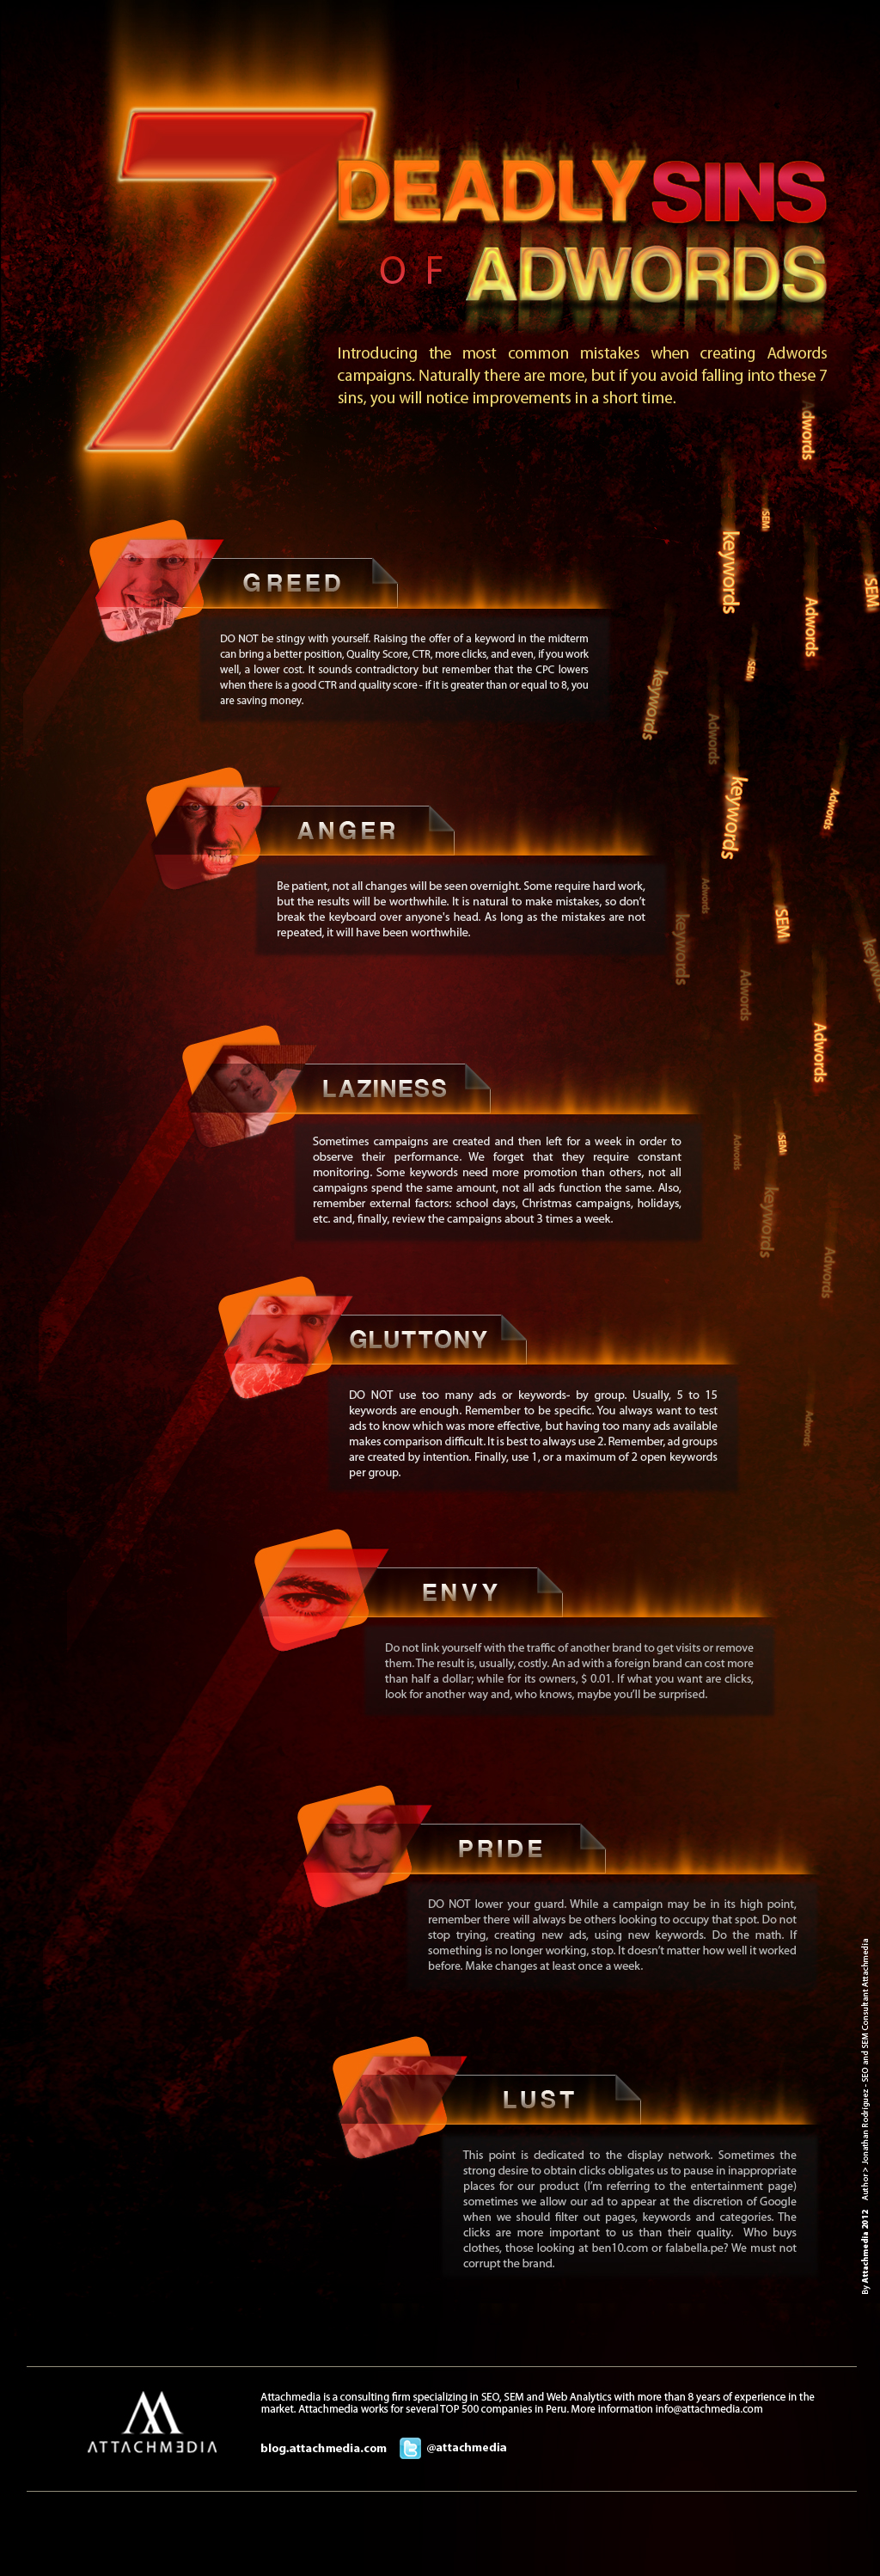 7 Deadly Sins Of Adwords Infographic Infographic List